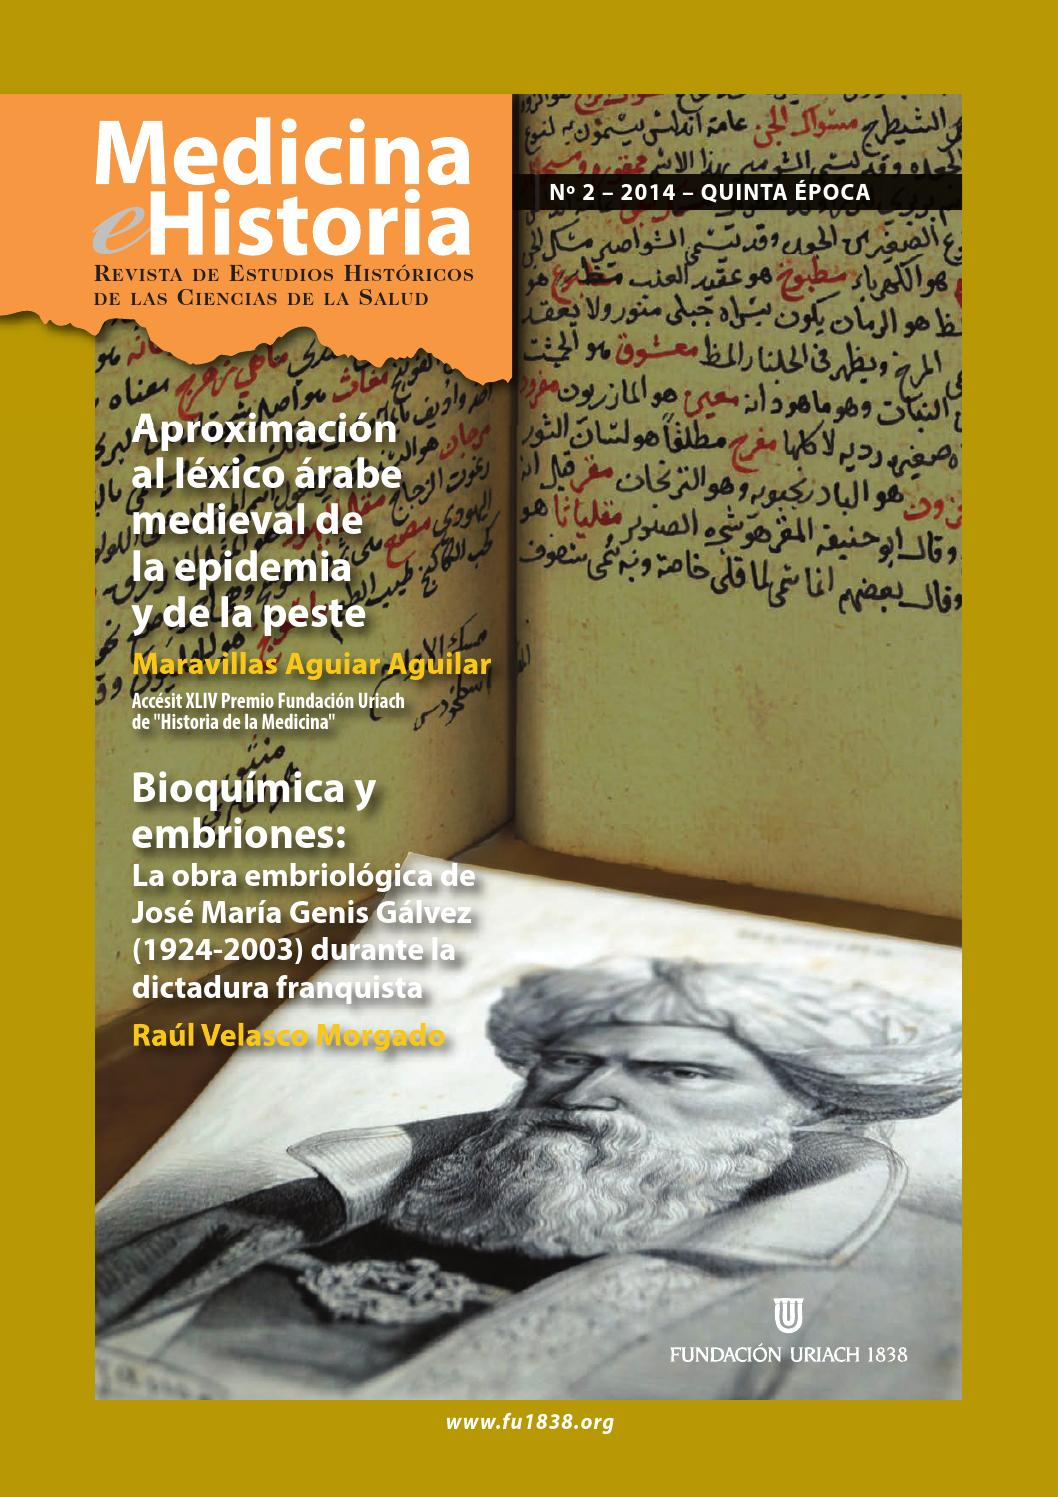 Medicina & Historia 2014-2 by Fundación Uriach 1838 - issuu